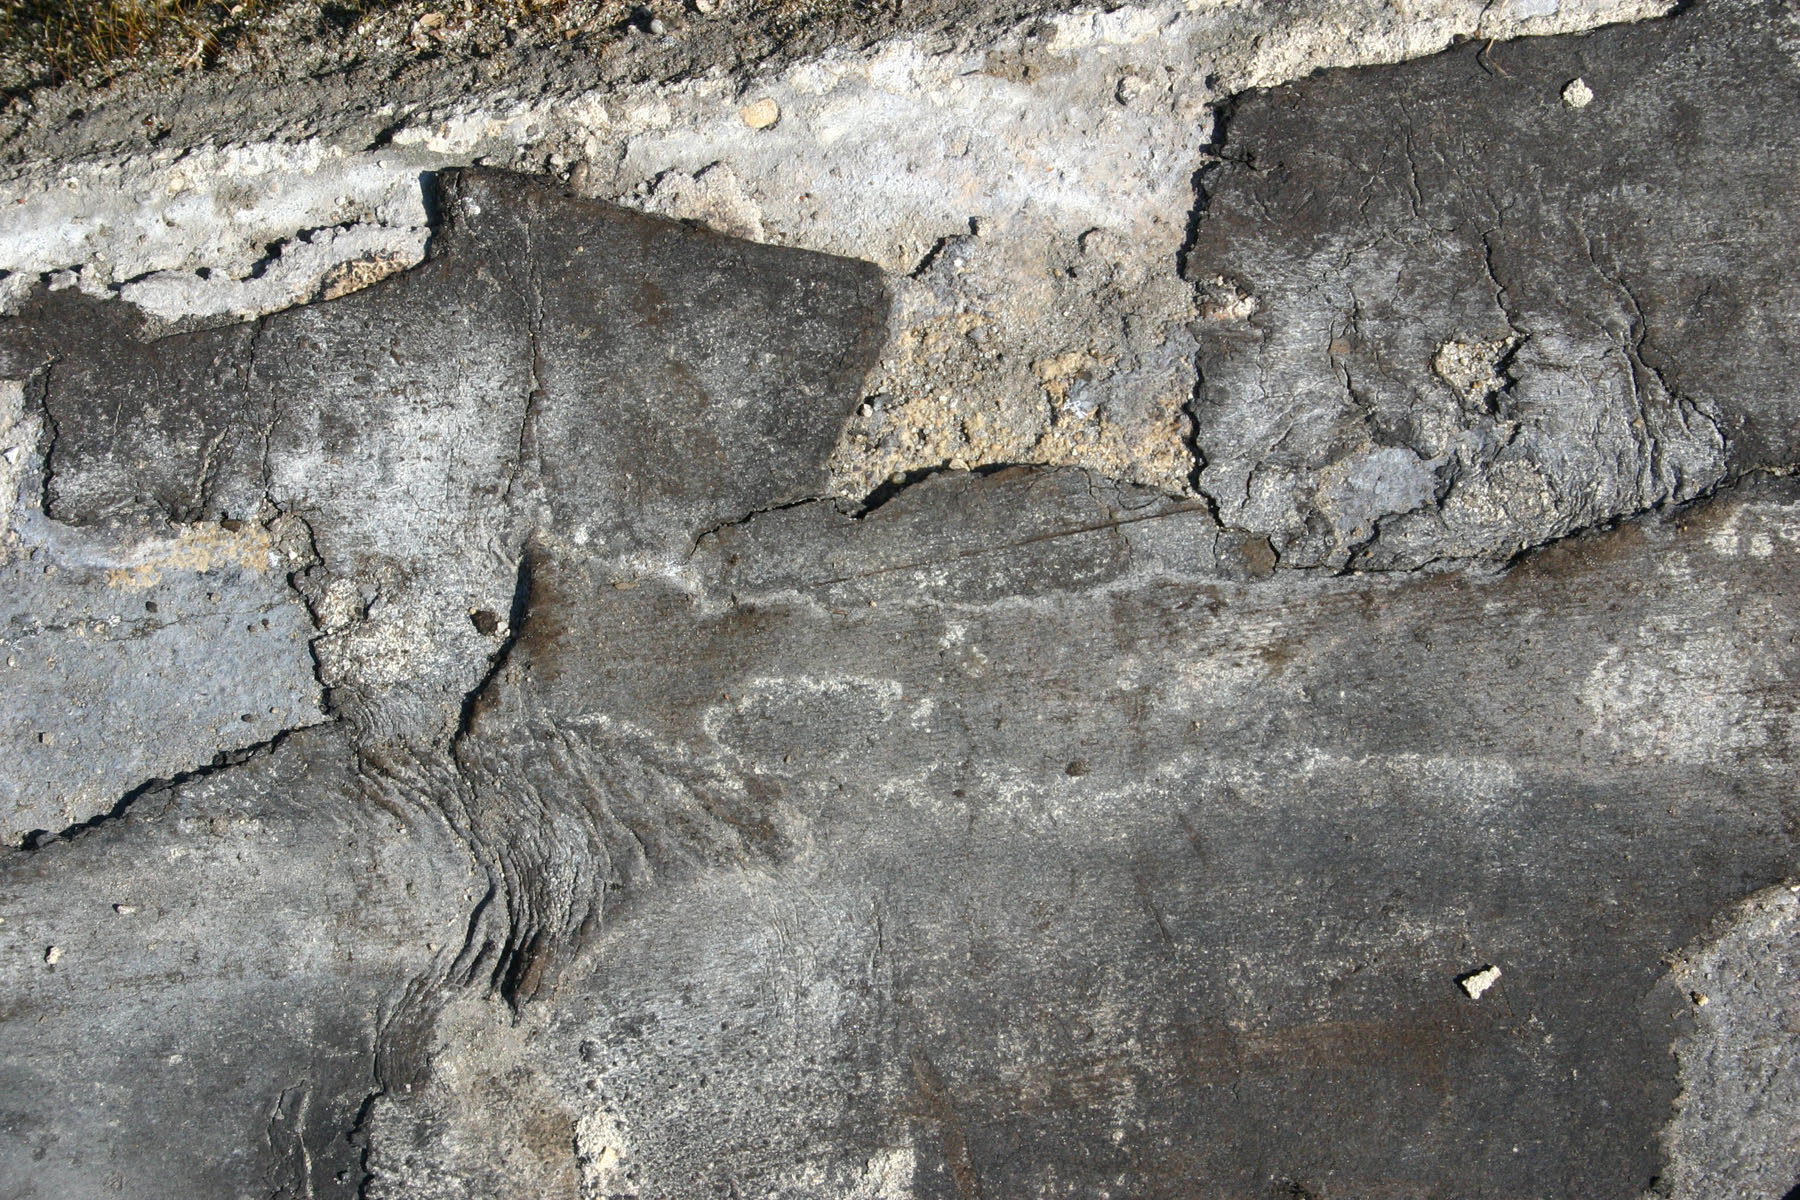 Cracked concrete wall, Cement, Concrete, Cracked, Cracks, HQ Photo